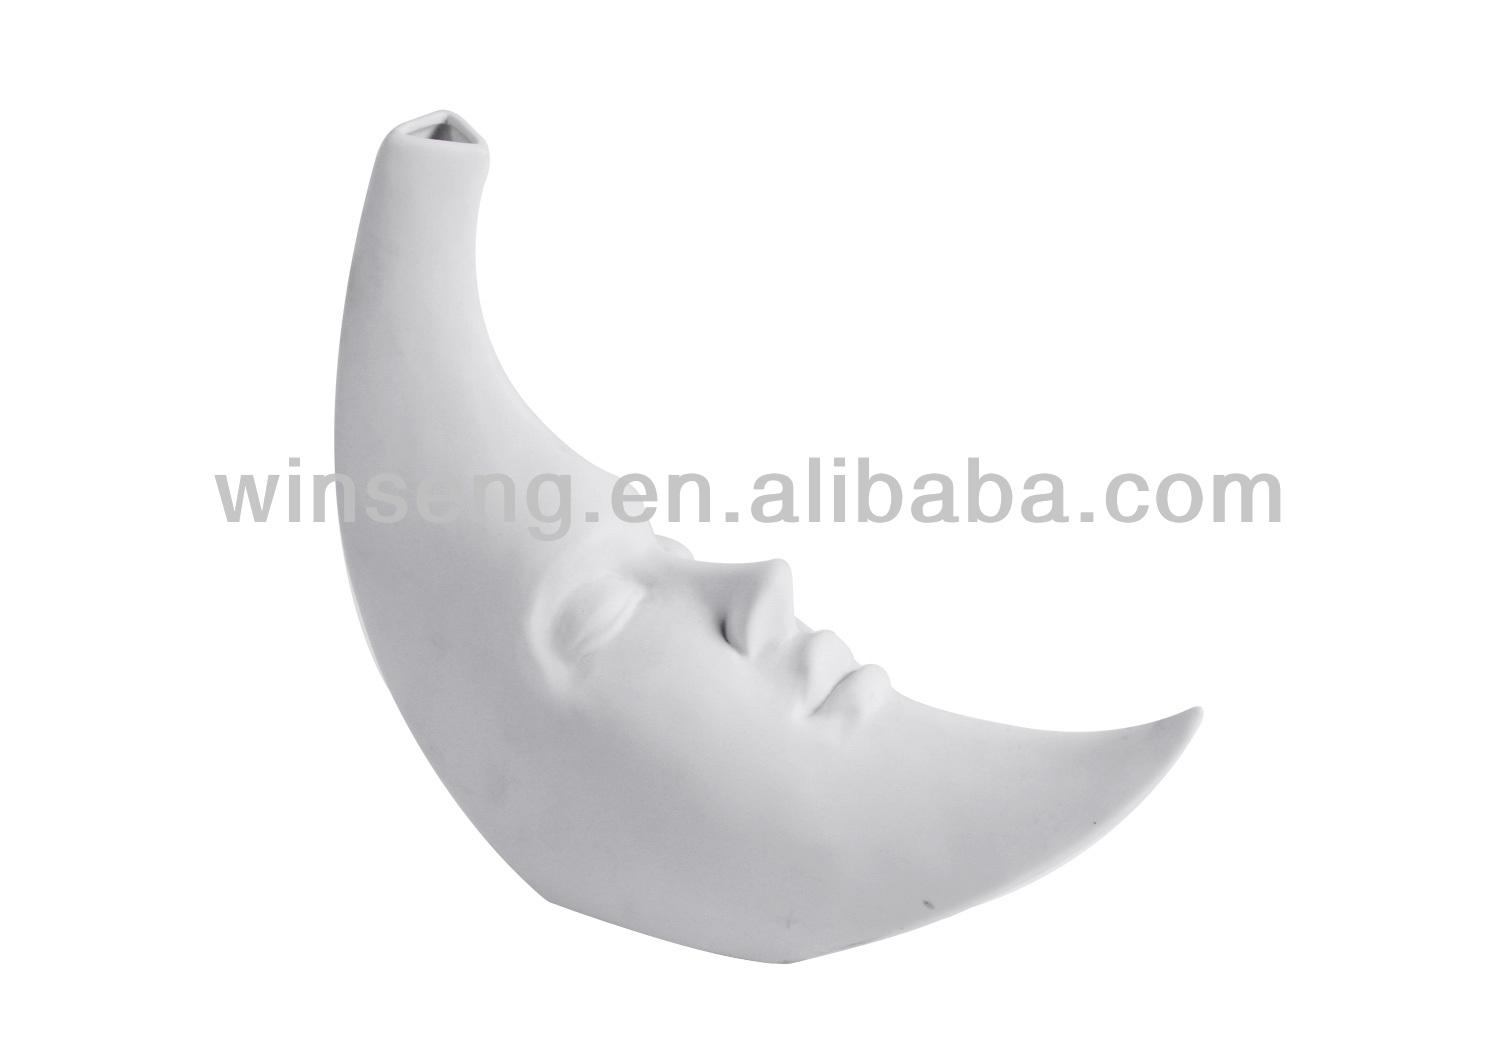 White Ceramic Moon Shape Vase (large ver)